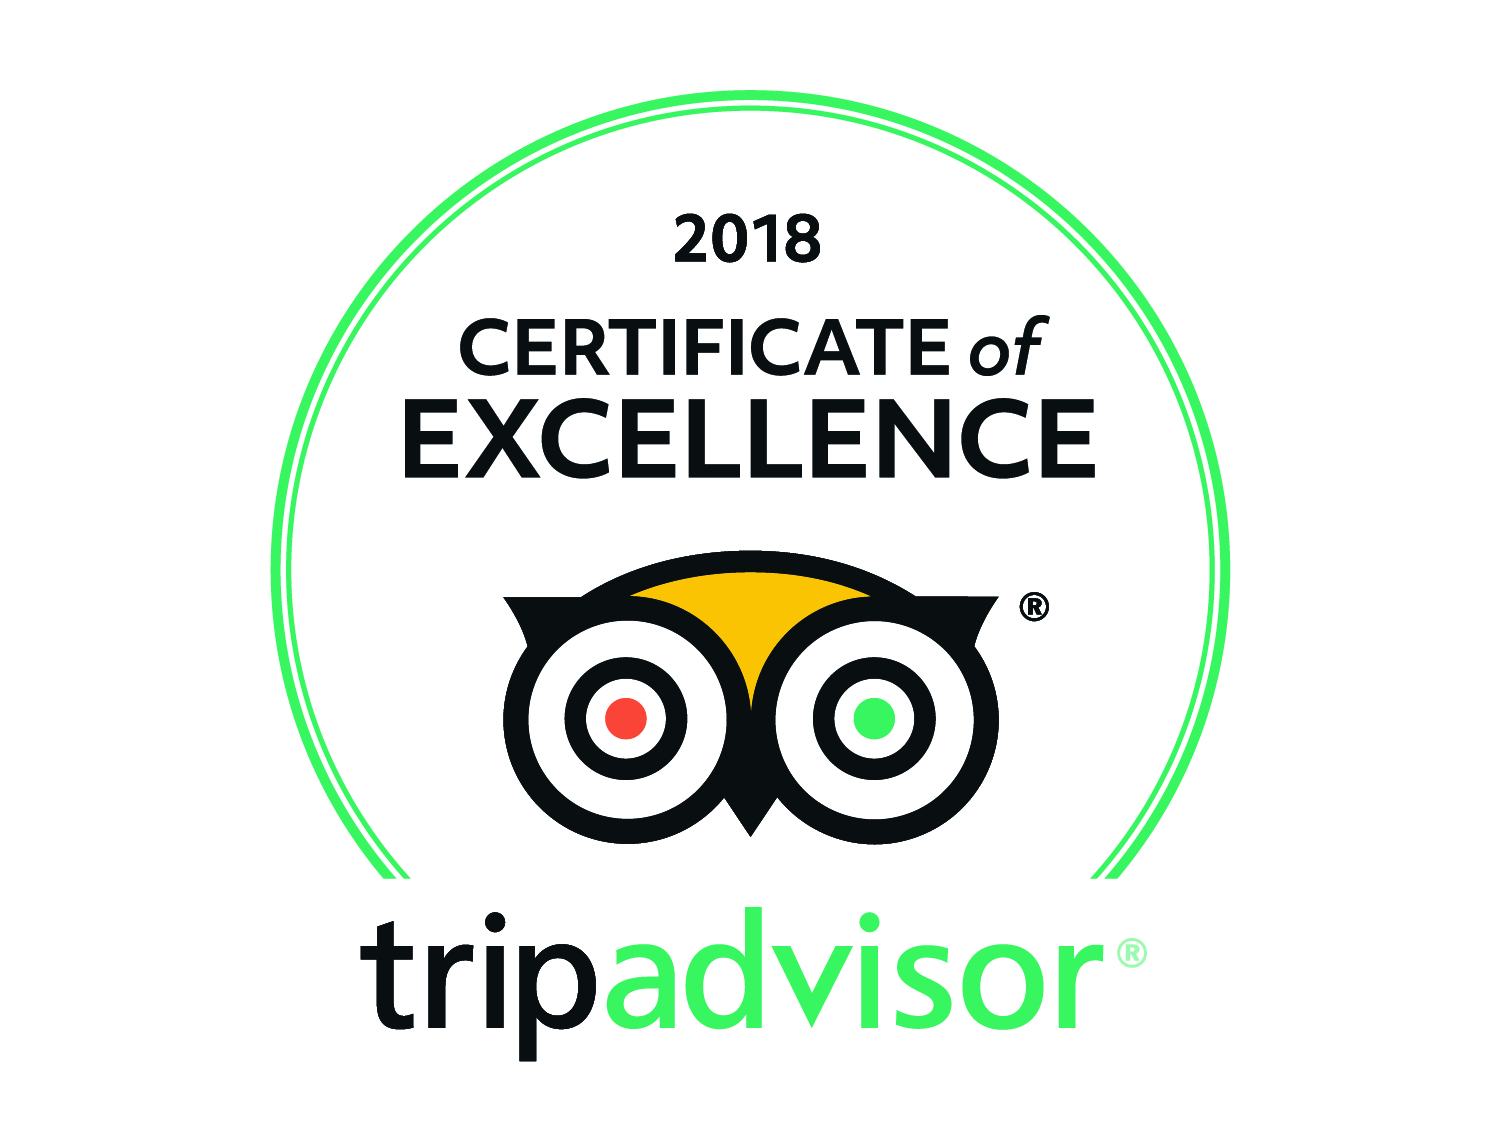 Shelbourne Park Greyhound Stadium is delighted to once again be awarded a Tripadvisor Certificate of Excellence in 2018